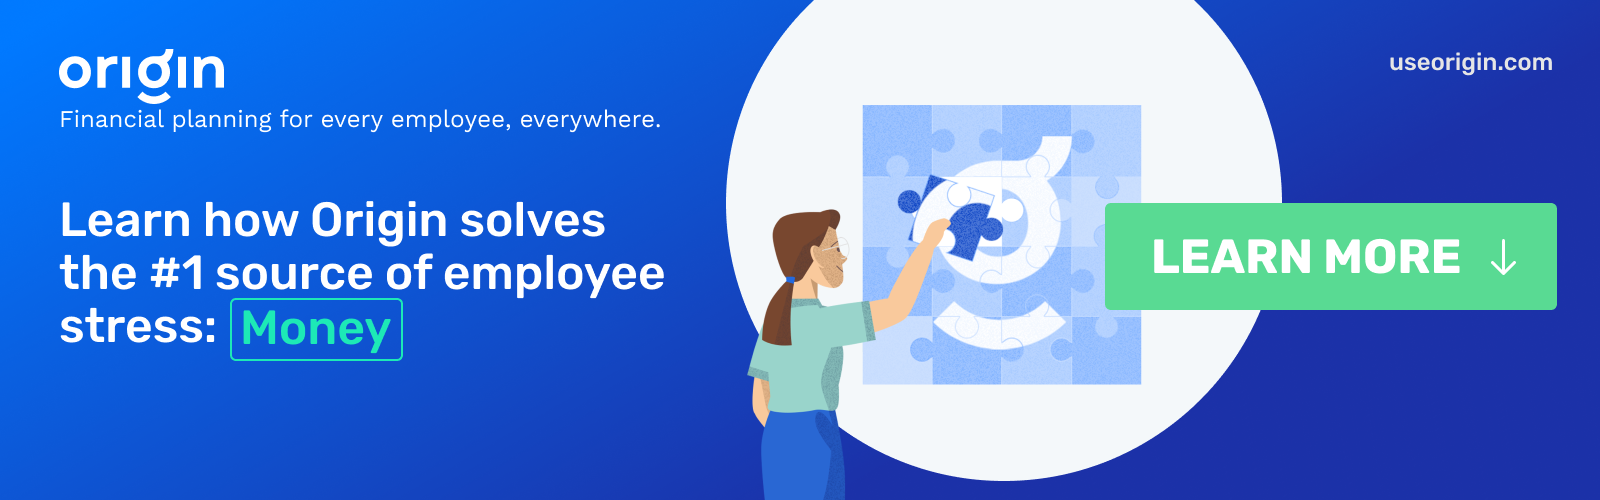 """A graphic with the text """"Learn how Origin solves the #1 source of employee stress: Money"""". Click the button to book a meeting to learn about Origin financial wellness."""